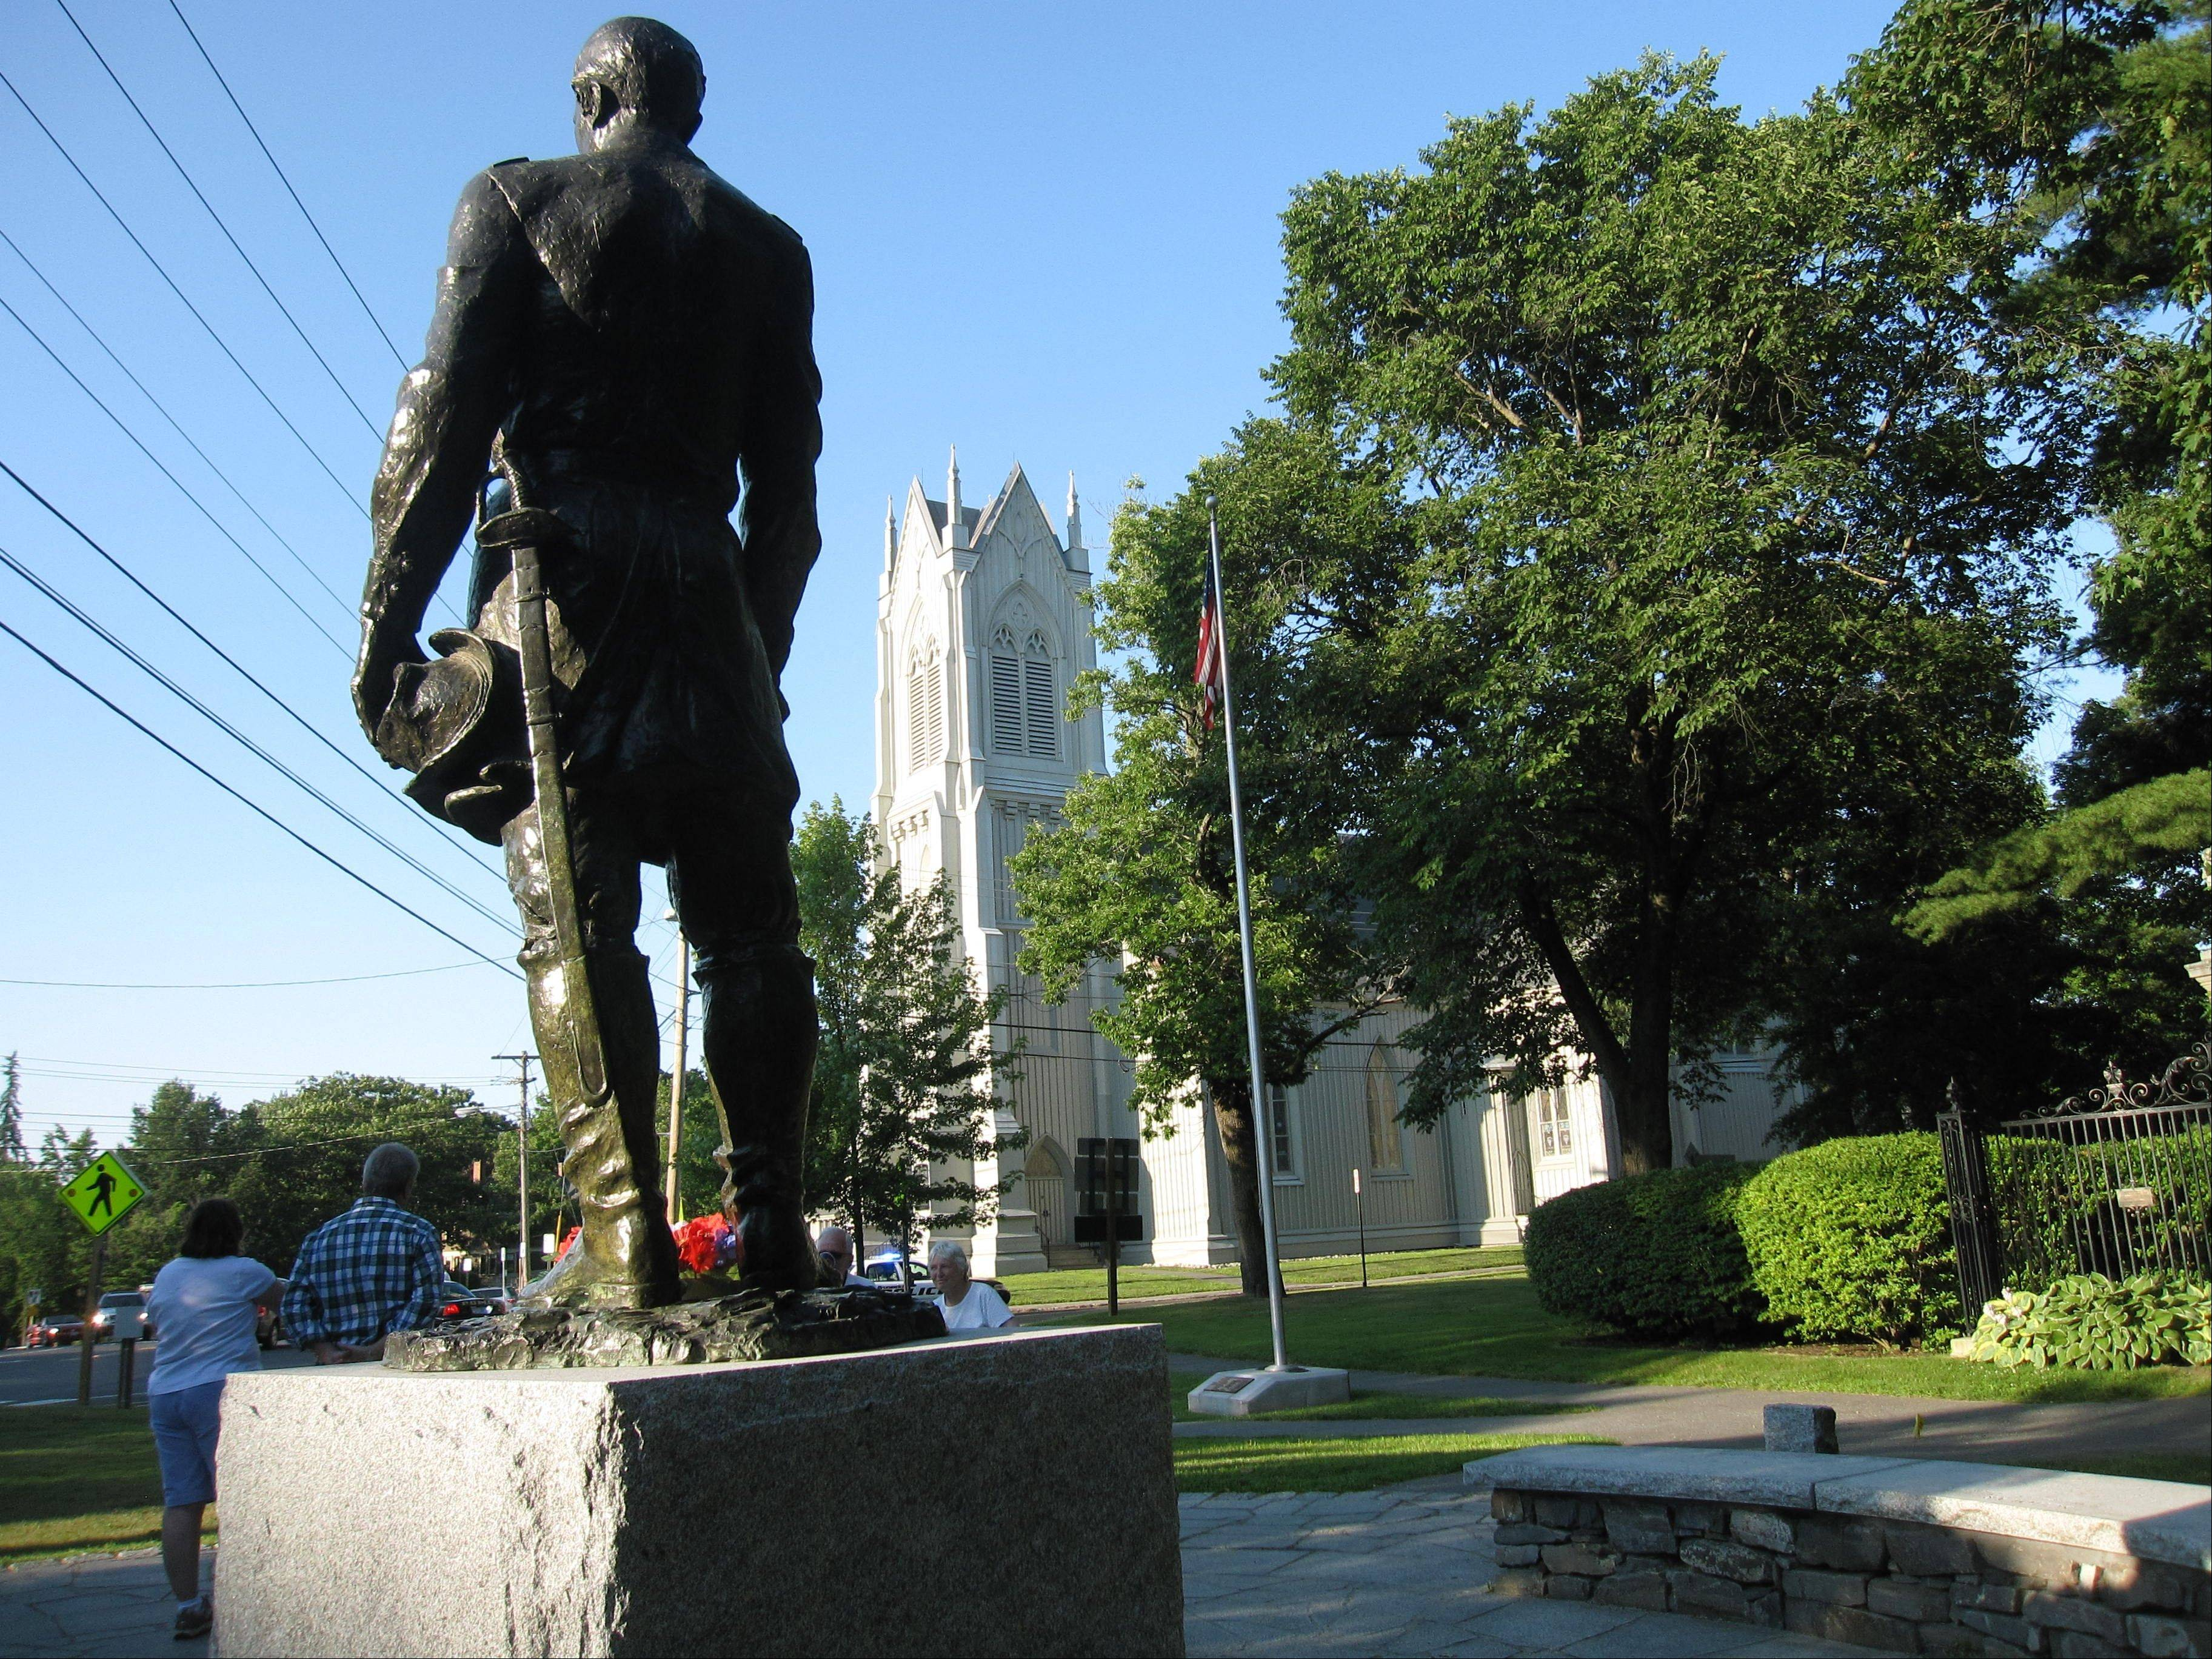 Behind the statue of Joshua Chamberlain sits the First Parish Church, a Gothic Revival building that dates to the 1840s.